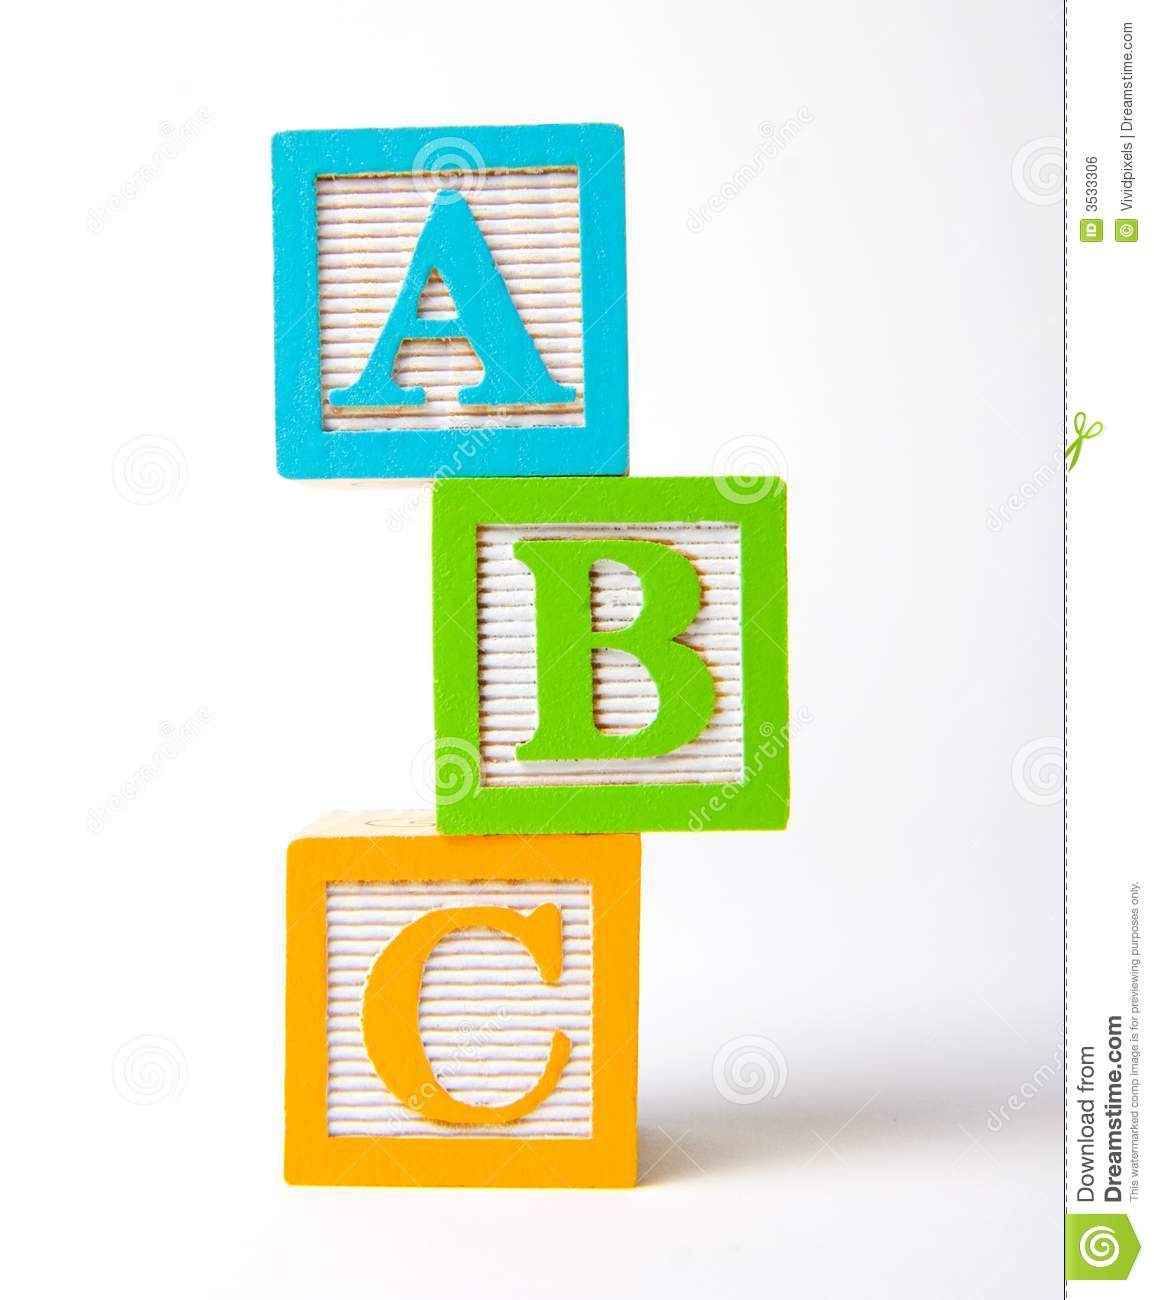 Clipart stacking blocks.